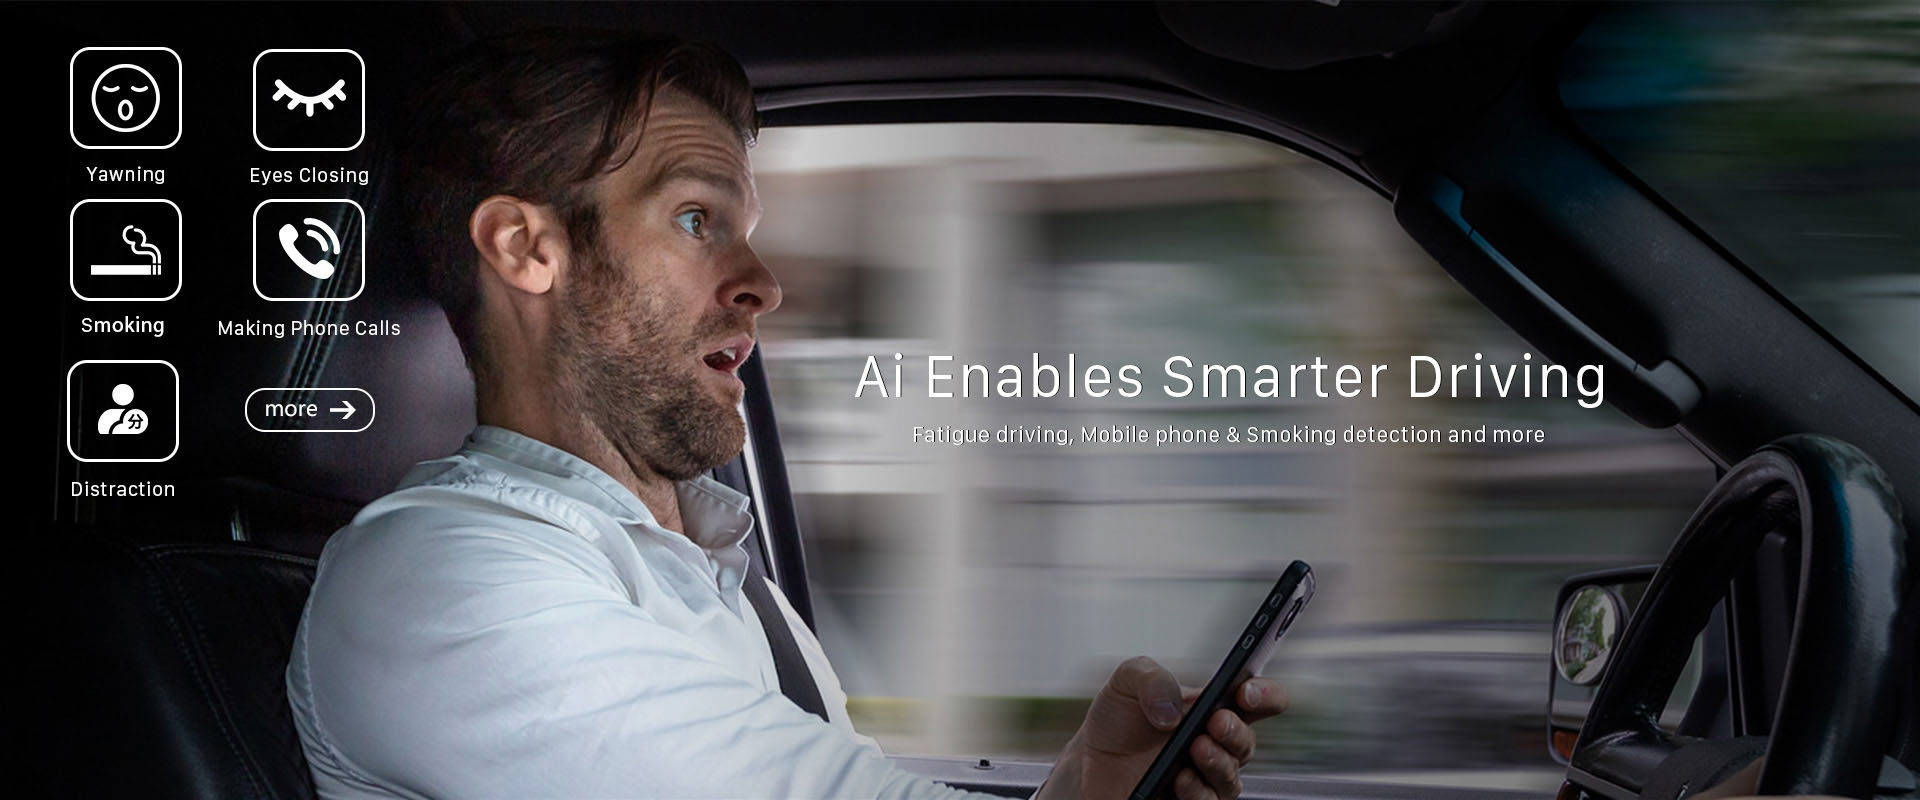 Ai Enables Smarter Driving